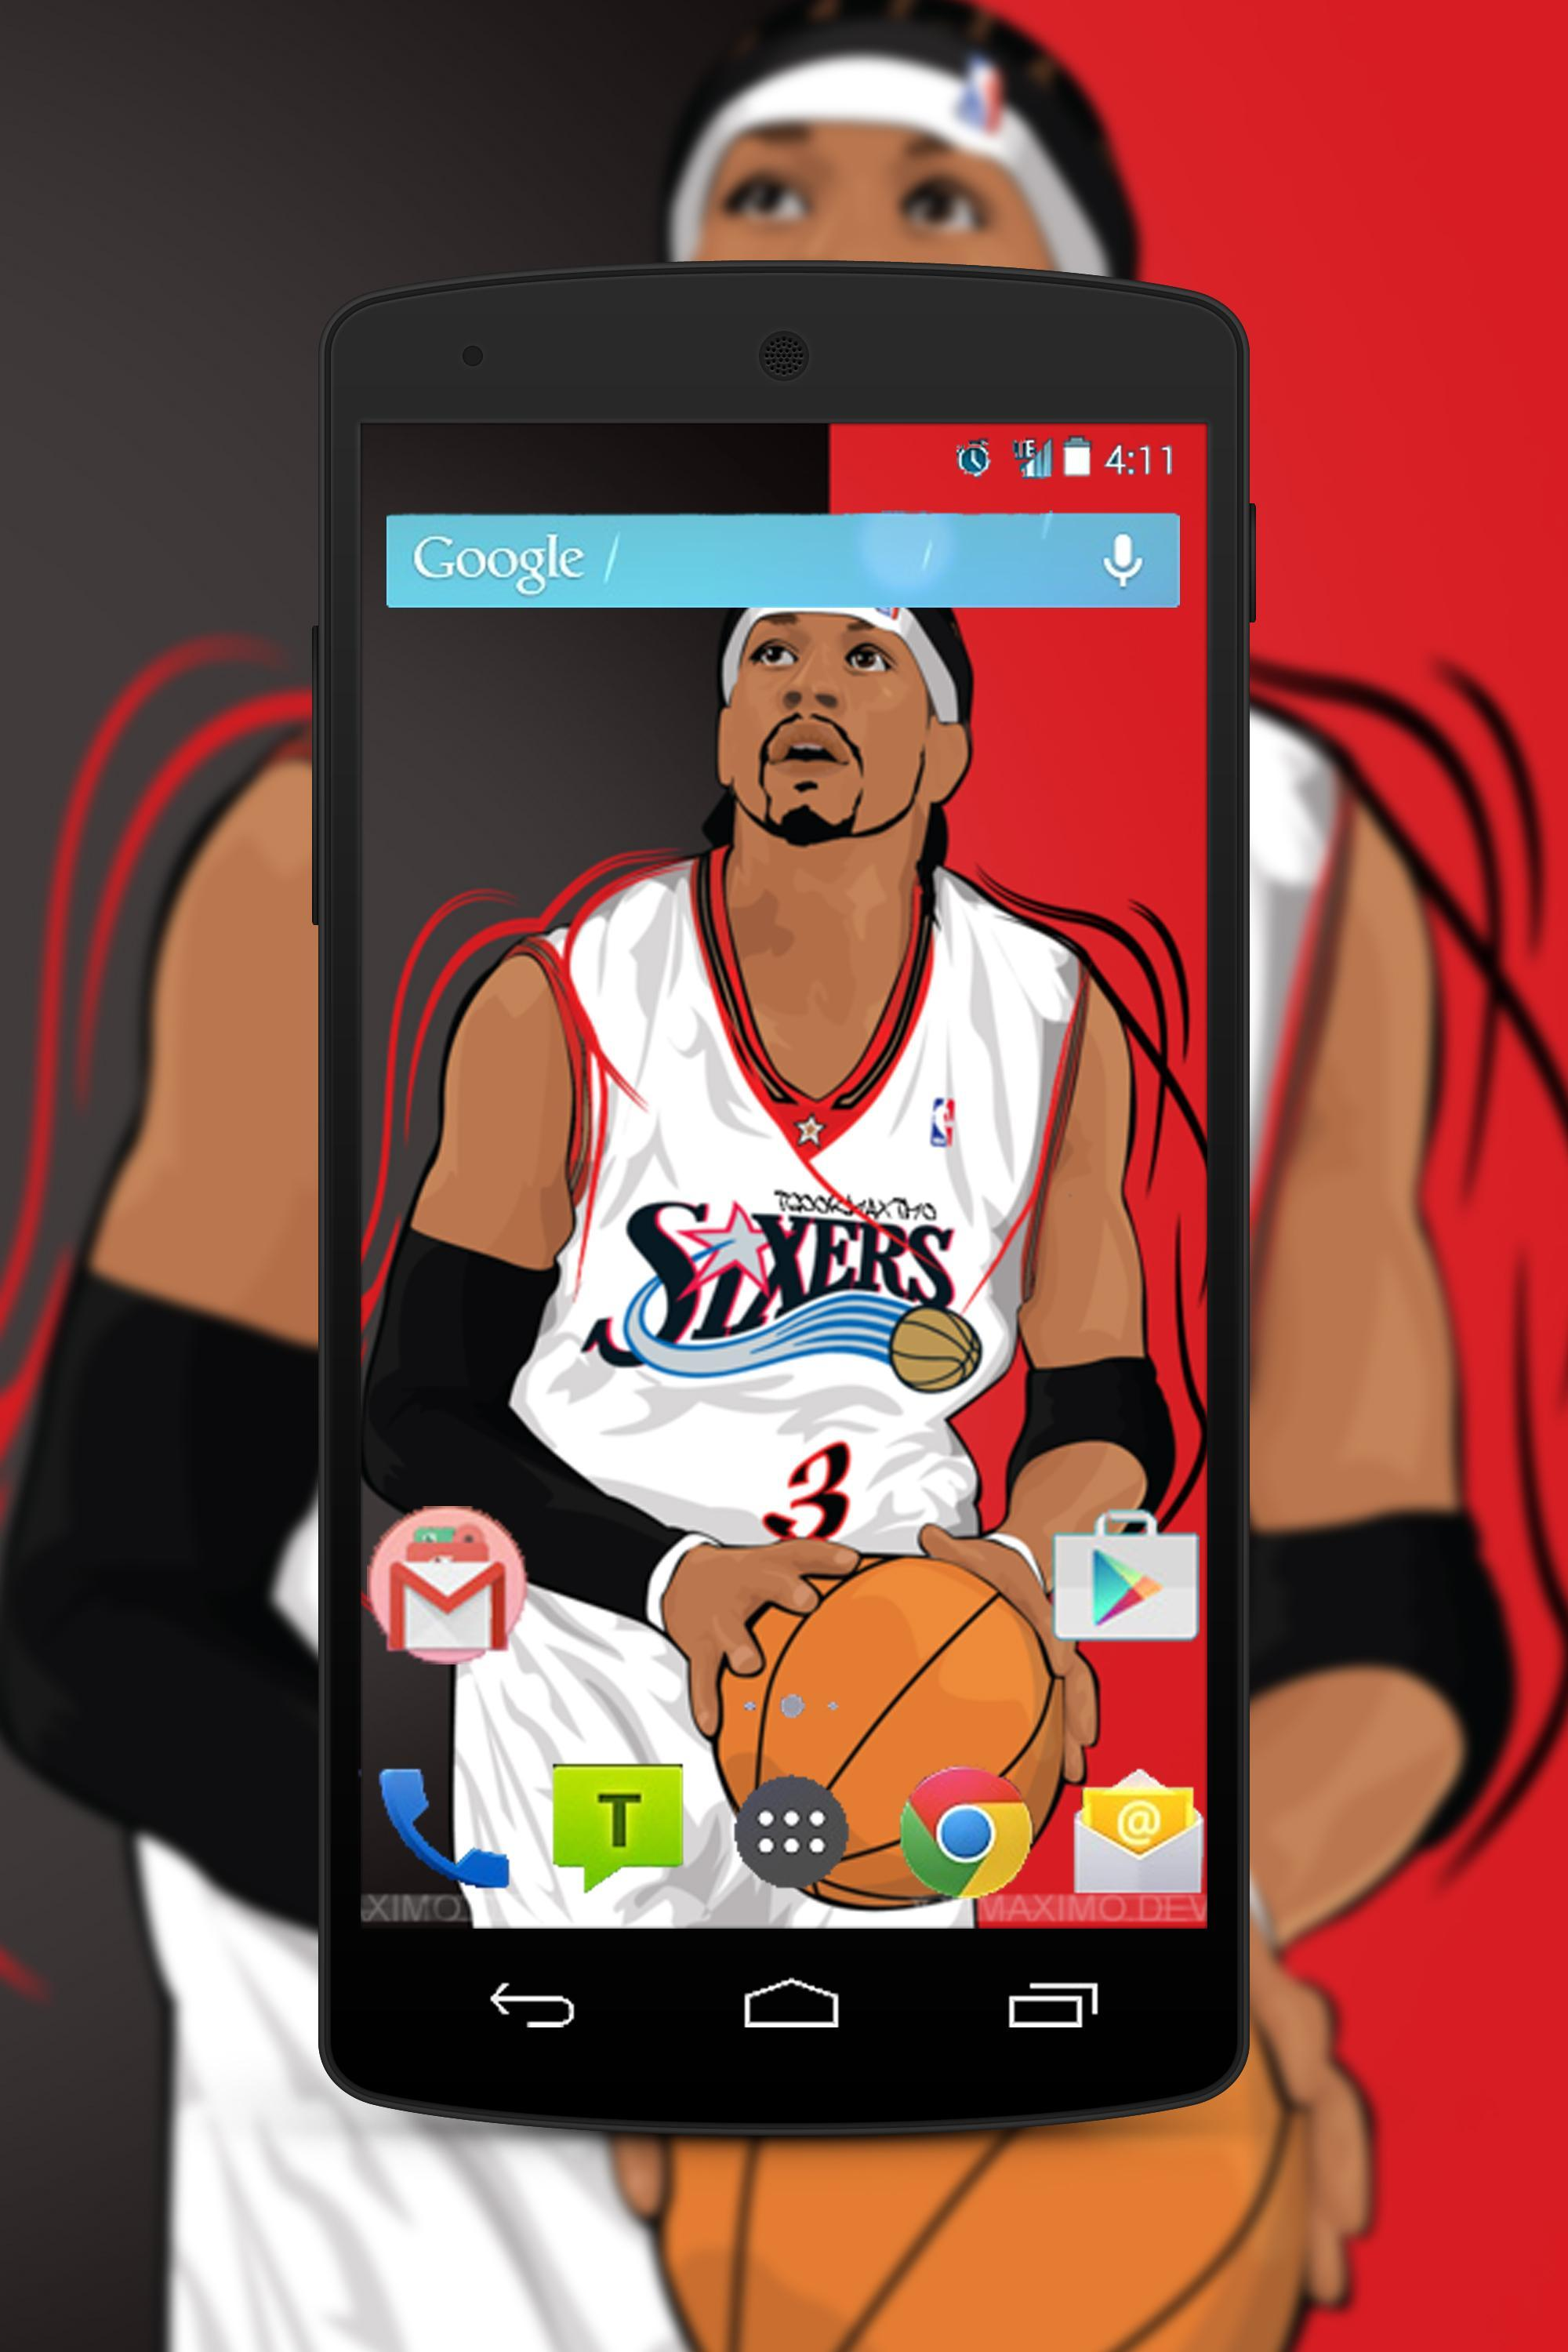 Allen Iverson Wallpaper Fans Hd For Android Apk Download